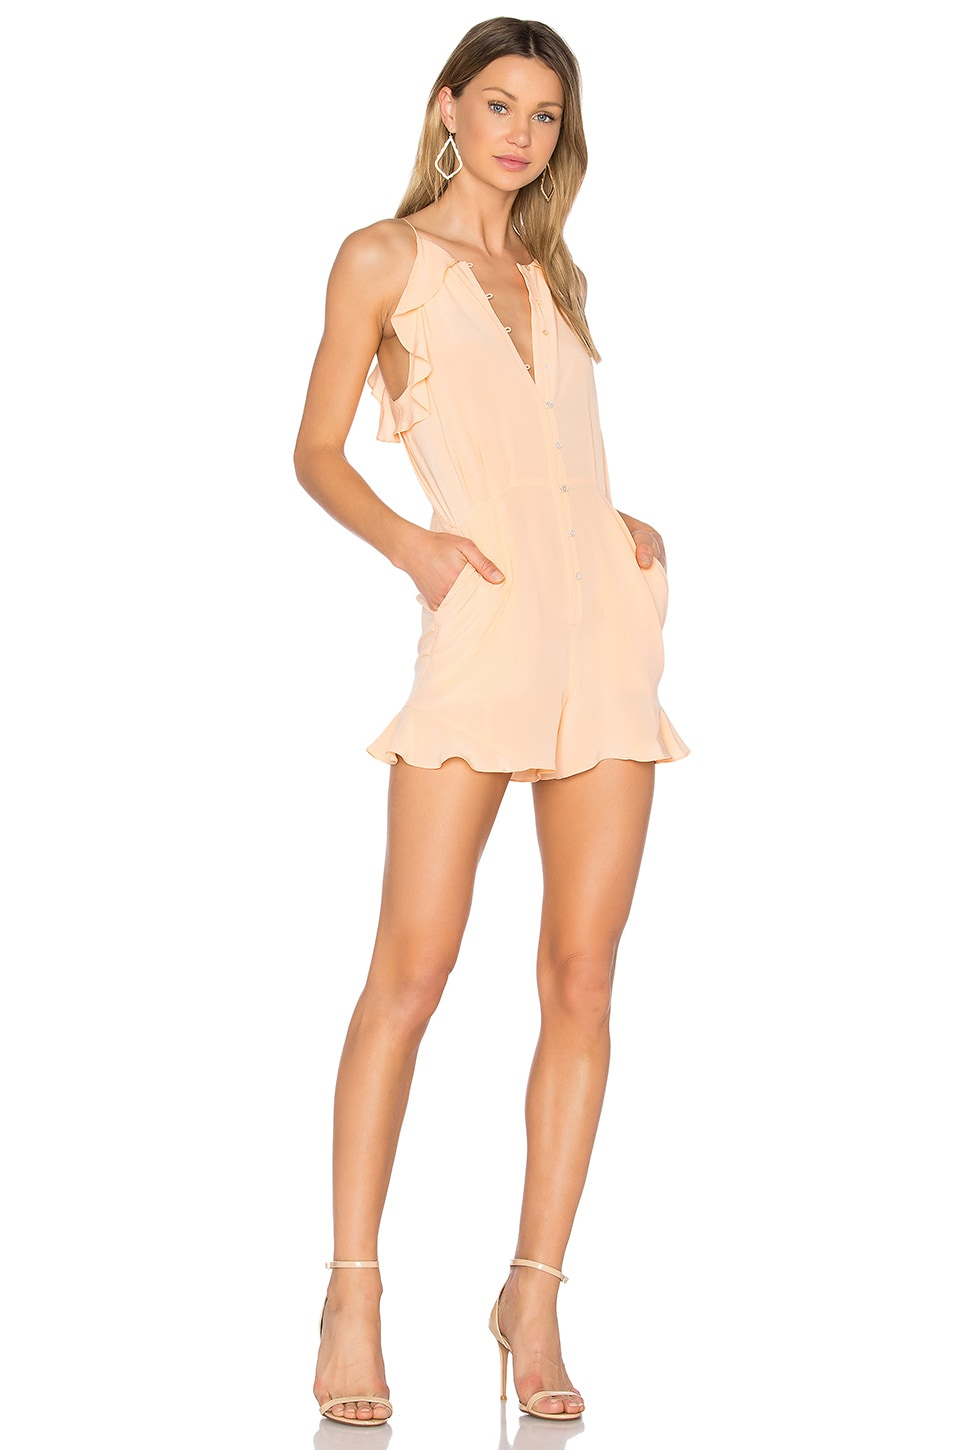 Bellamy Romper by Cosette